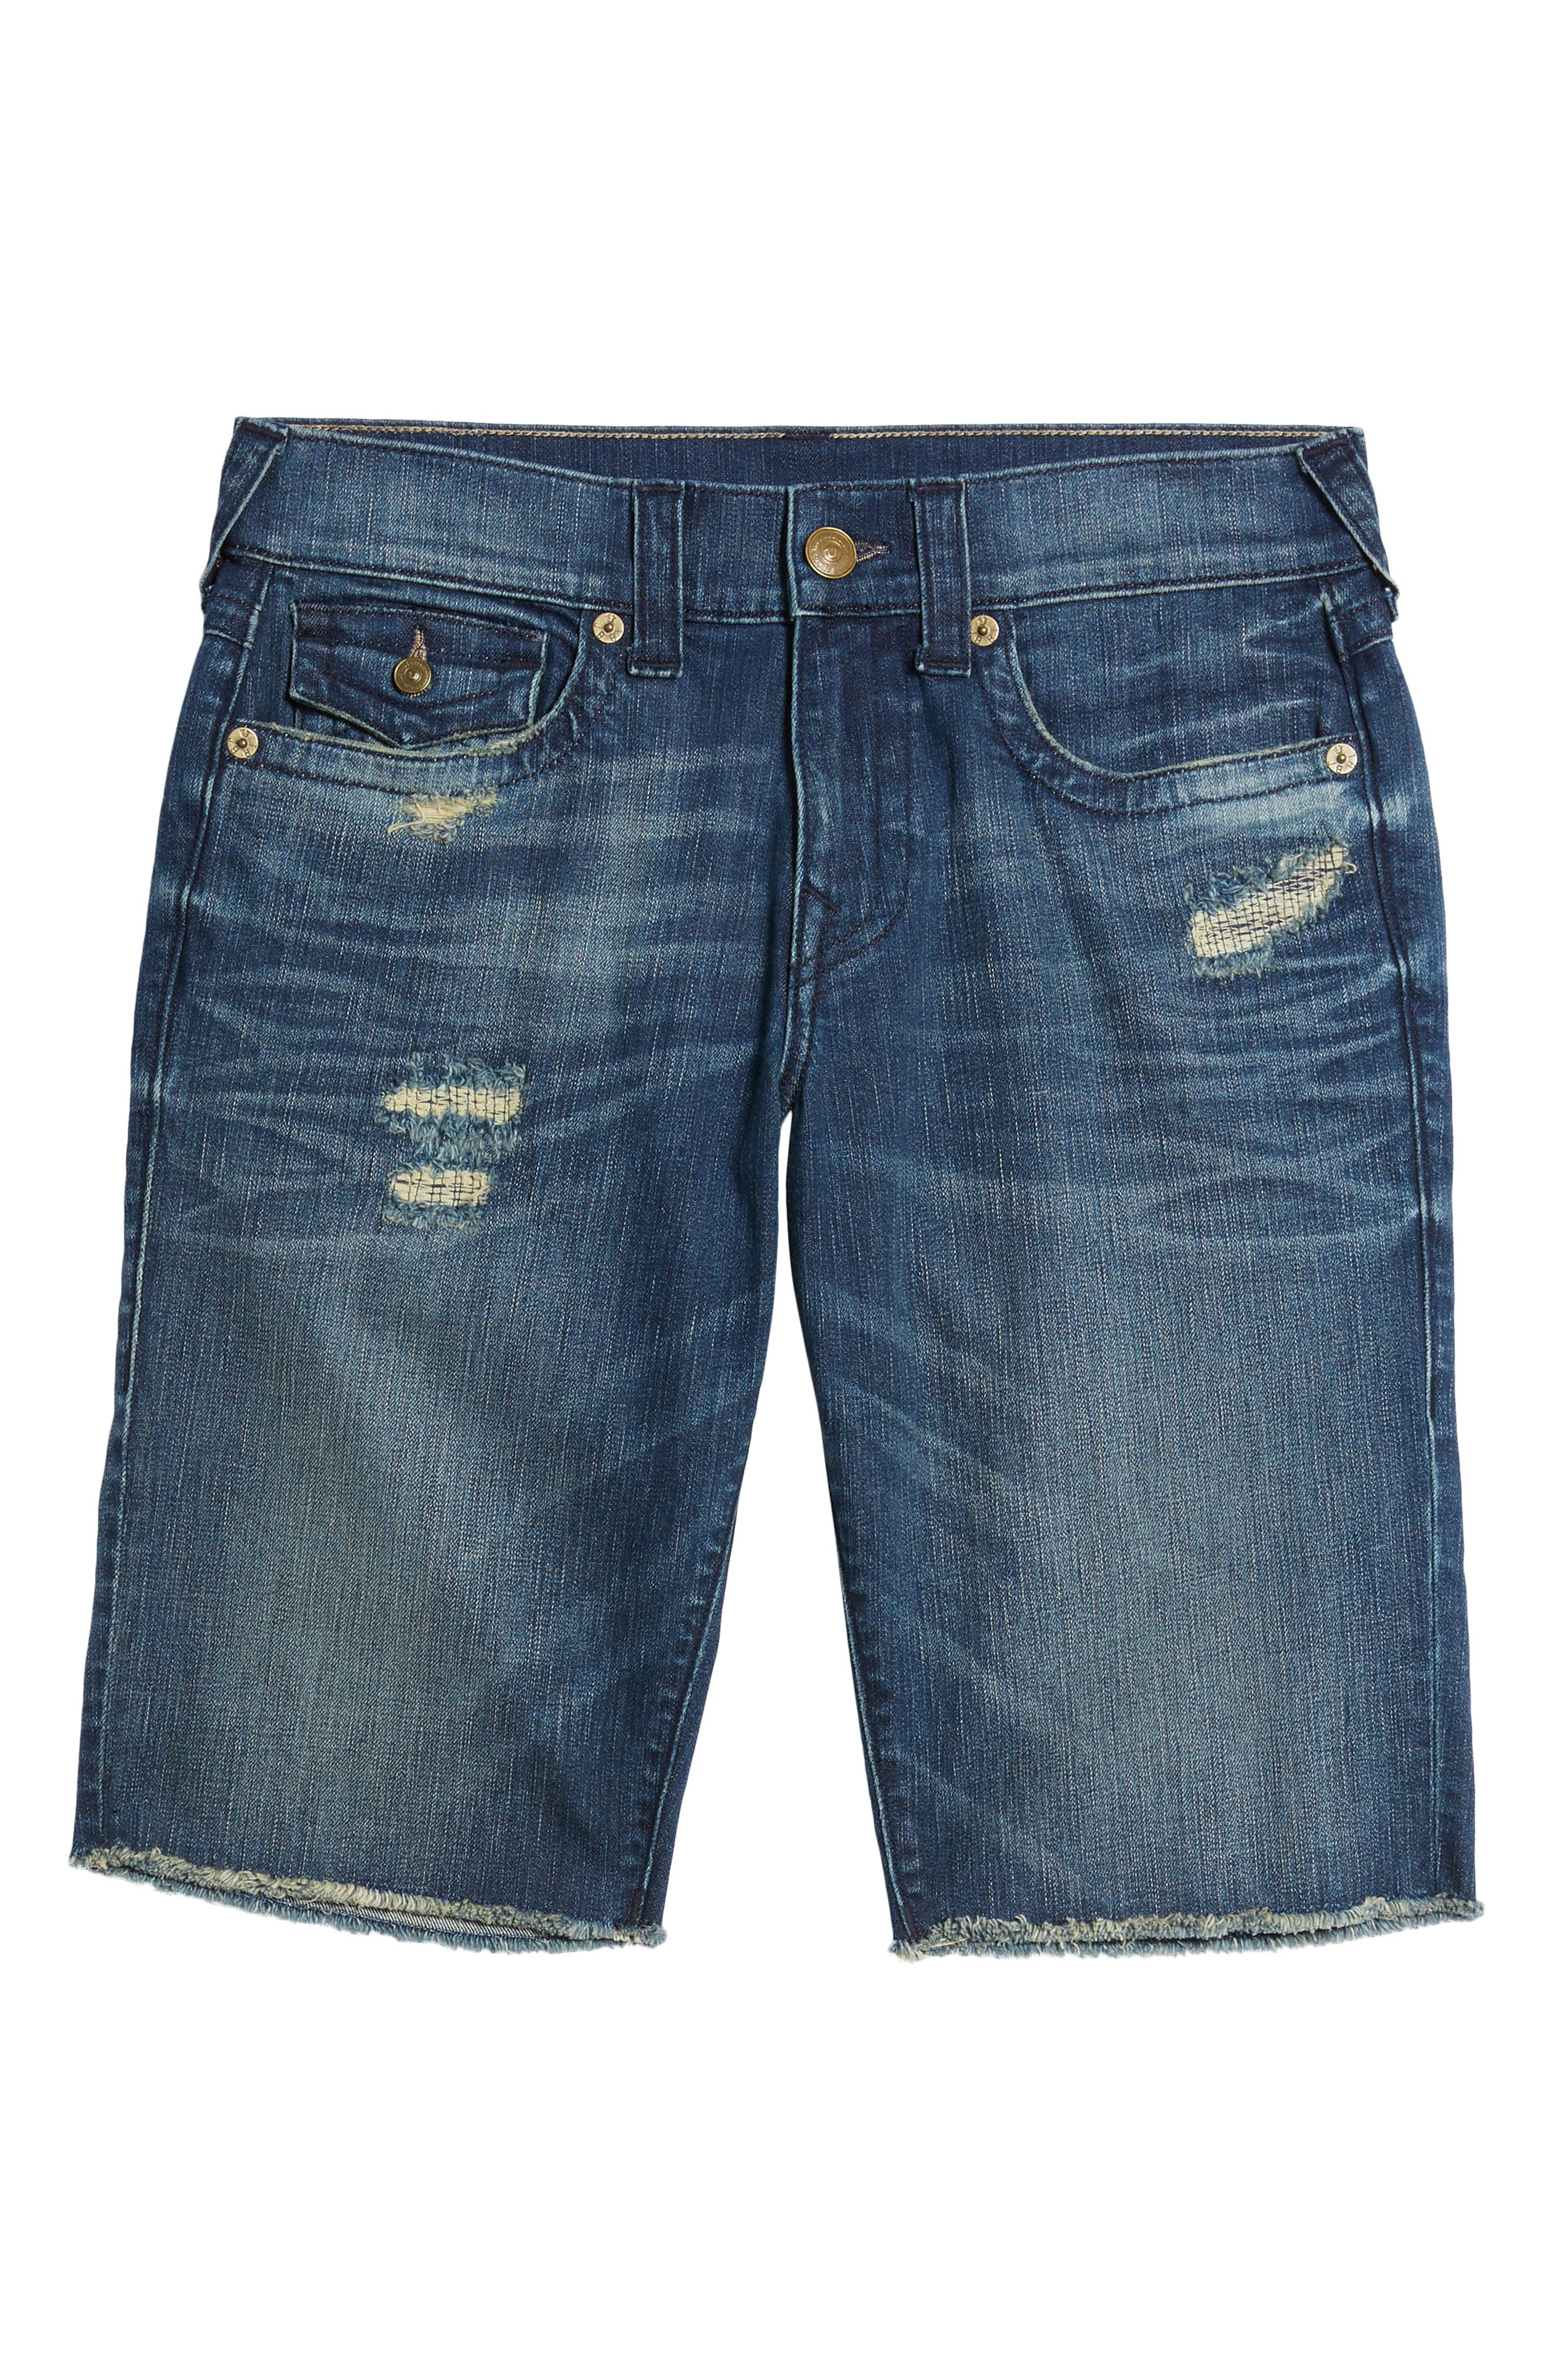 True Religion Brands Jeans Ricky Relaxed Fit Shorts,                             Alternate thumbnail 6, color,                             WORN AZUL